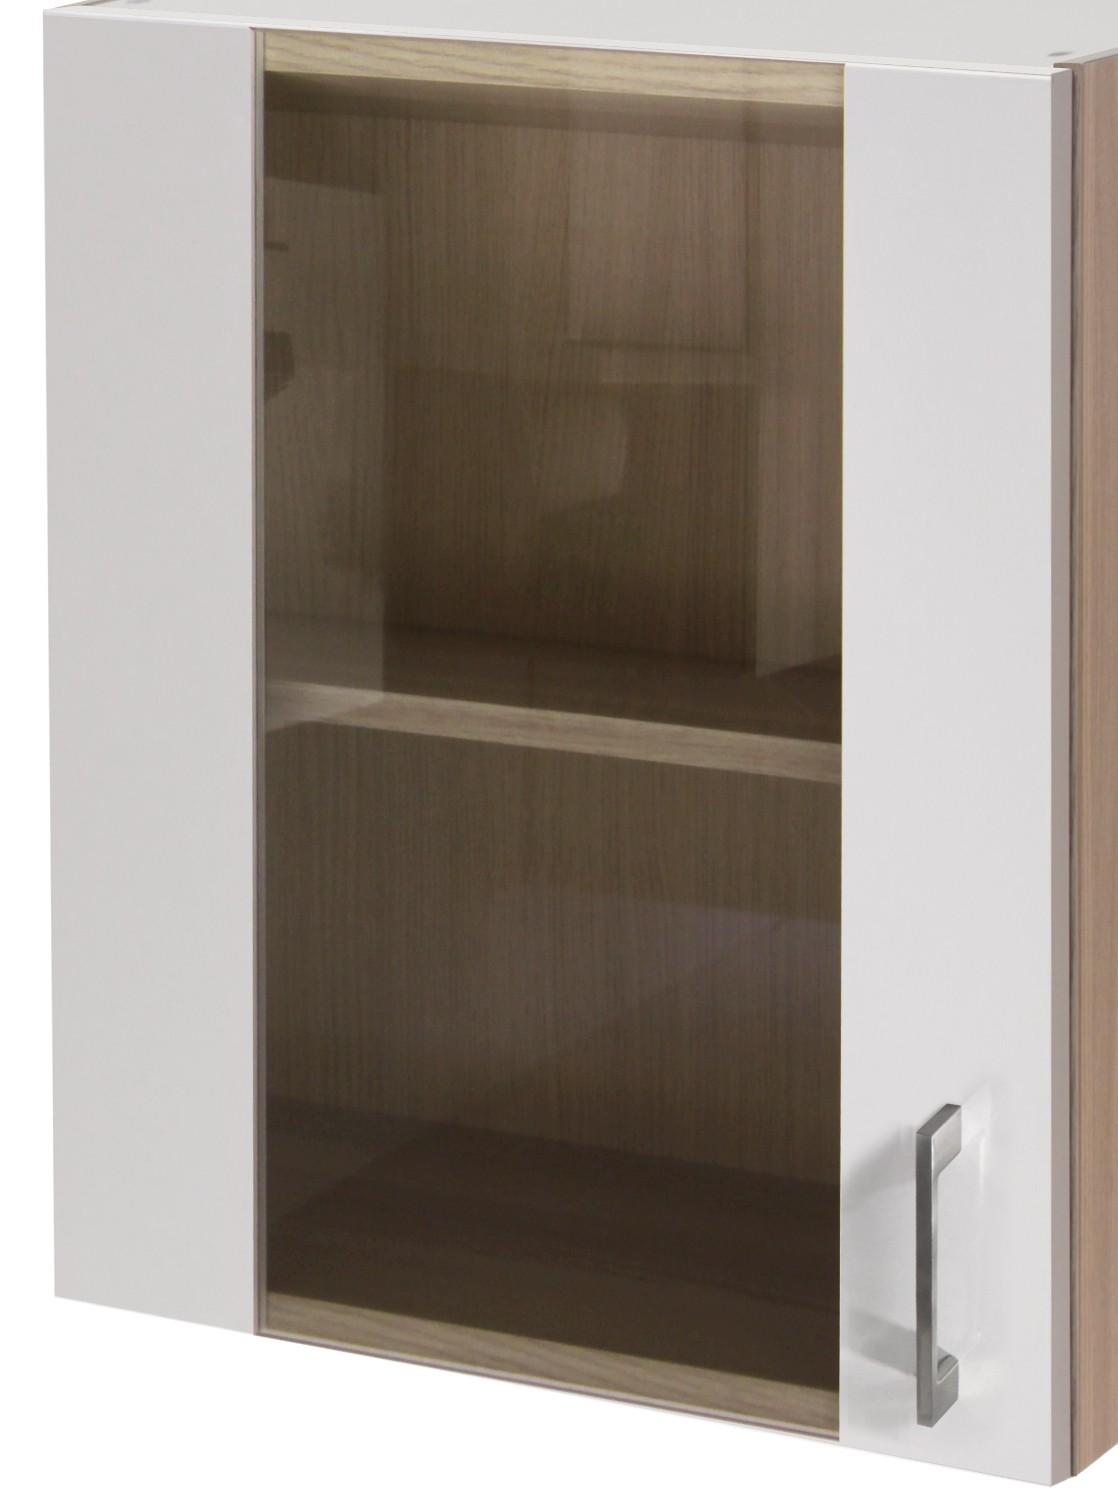 glas h ngeschrank florenz k chen h ngeschrank oberschrank glas t r 50 cm weiss ebay. Black Bedroom Furniture Sets. Home Design Ideas